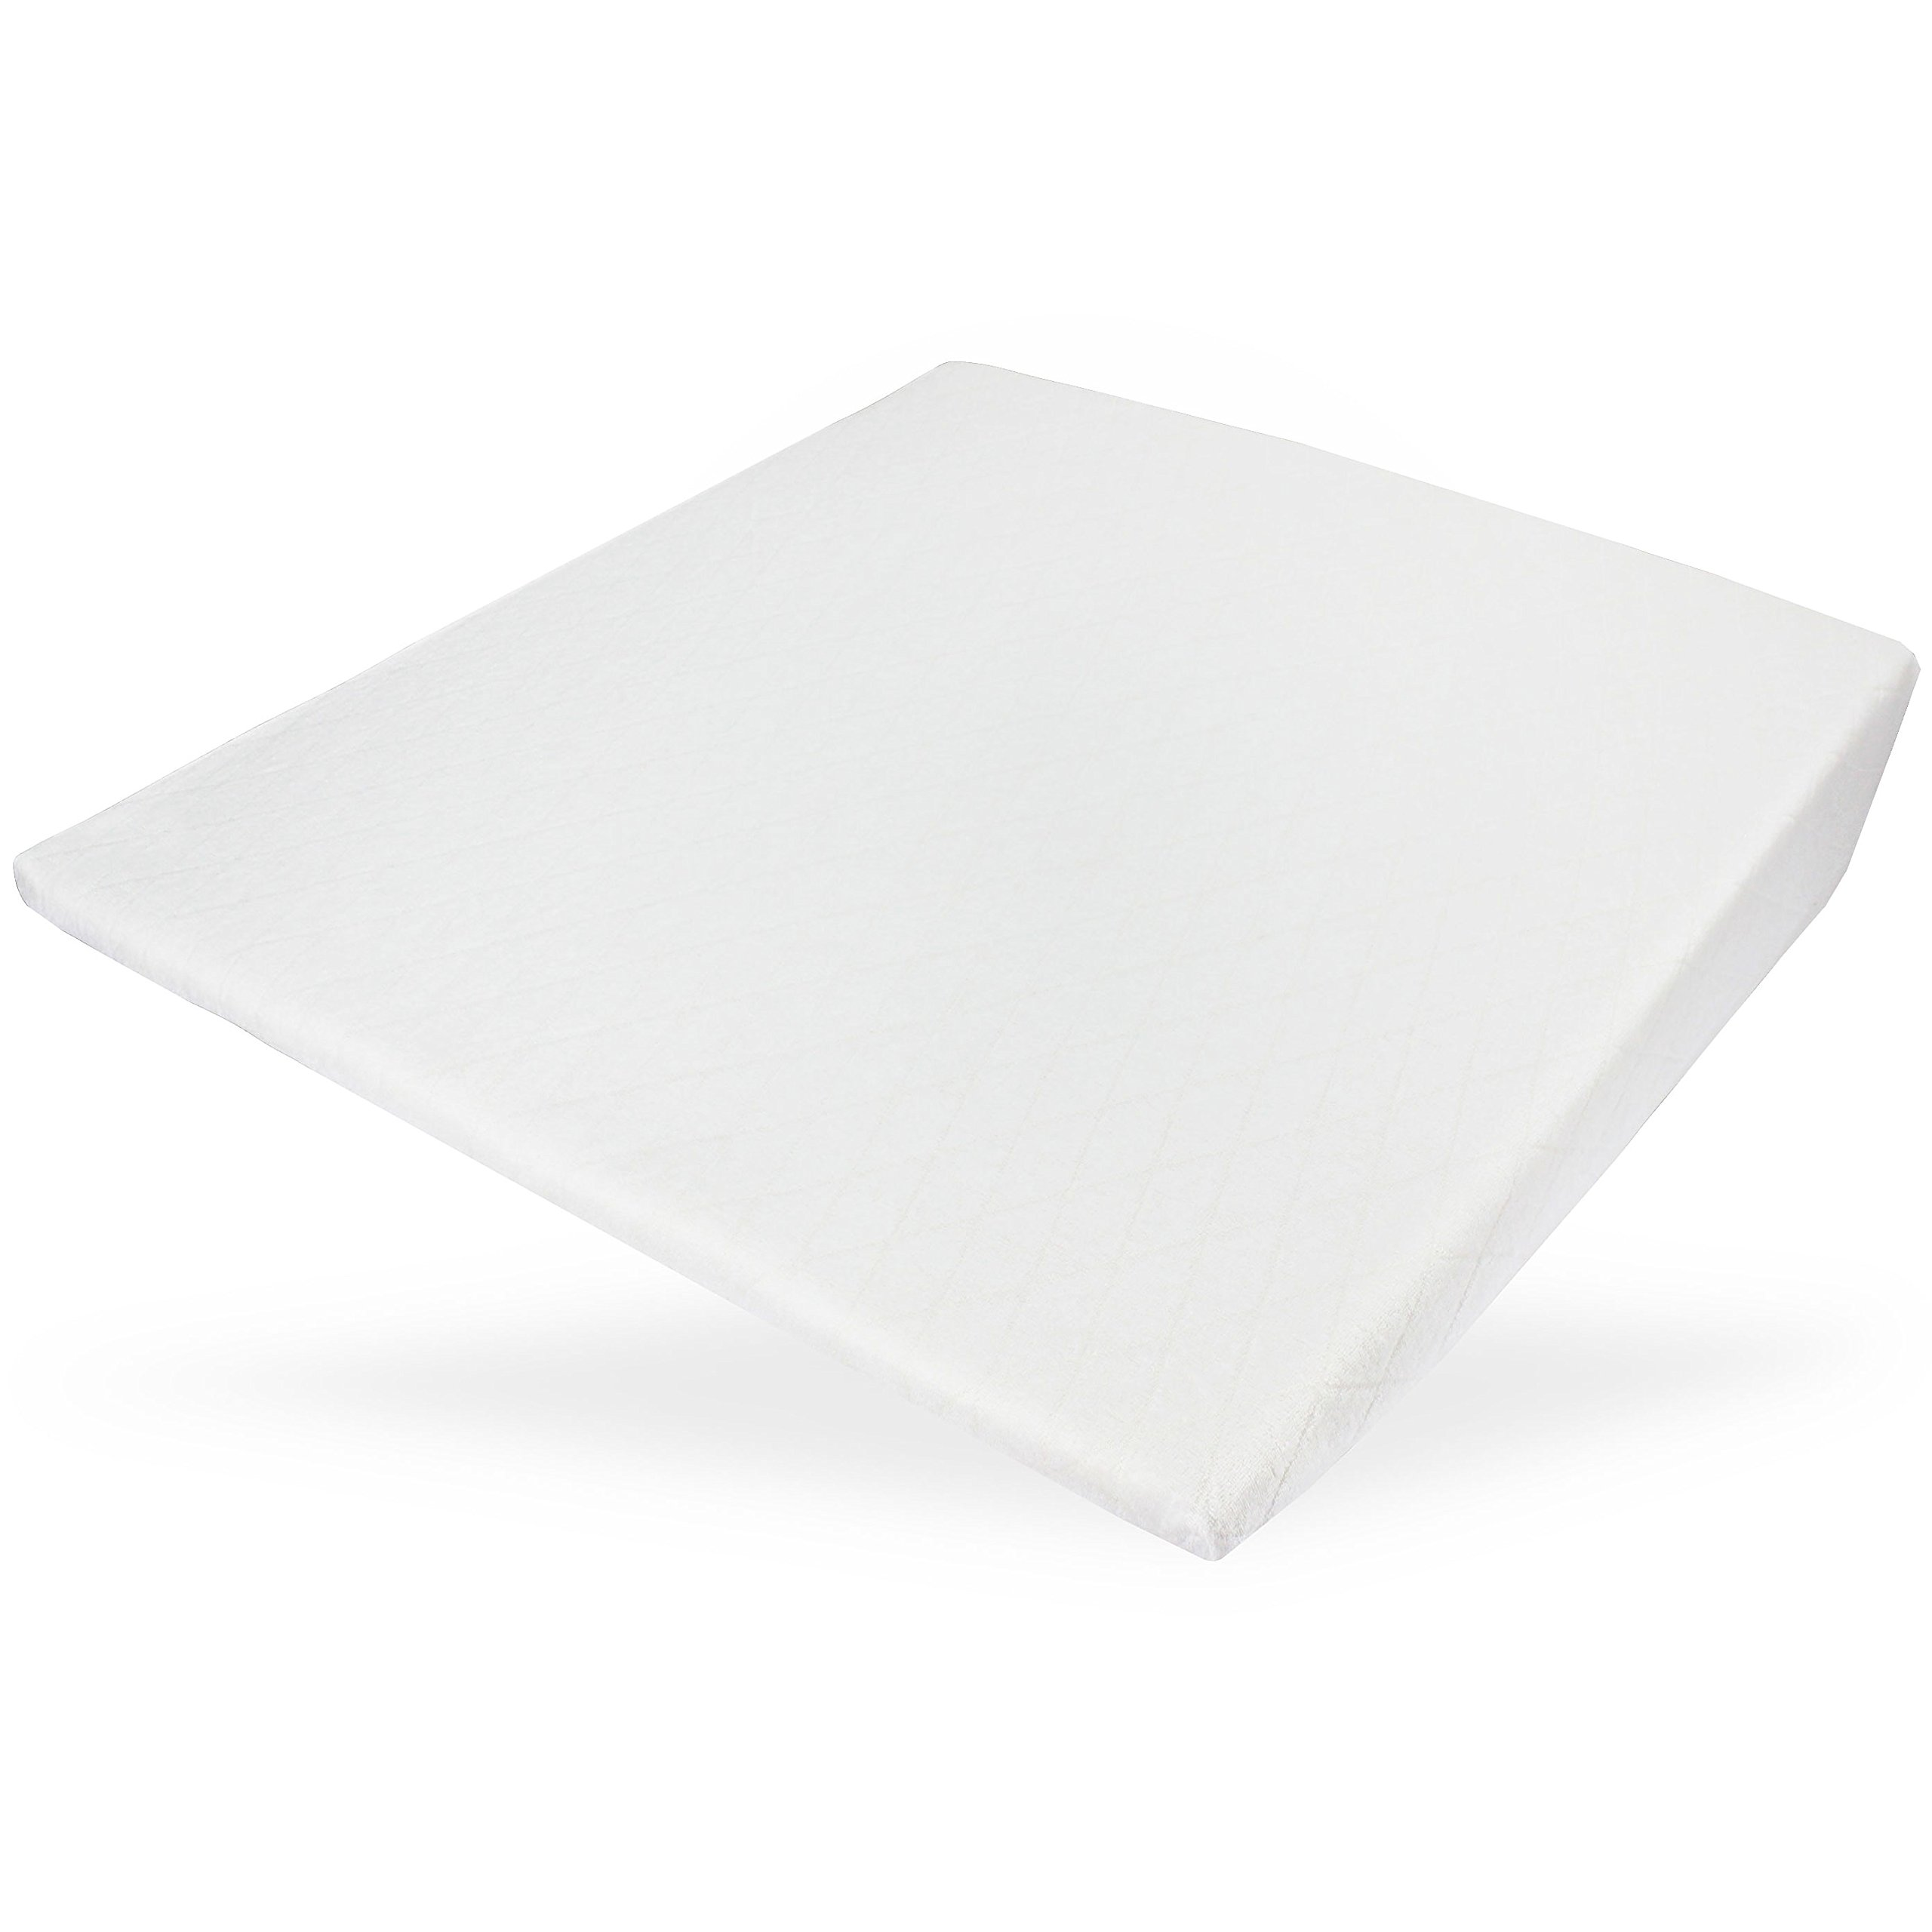 Acid Reflux Wedge Pillow with Memory Foam Overlay and Removable Microfiber Cover''BIG'' by Medslant. Recommended size for GERD and other sleep issues.